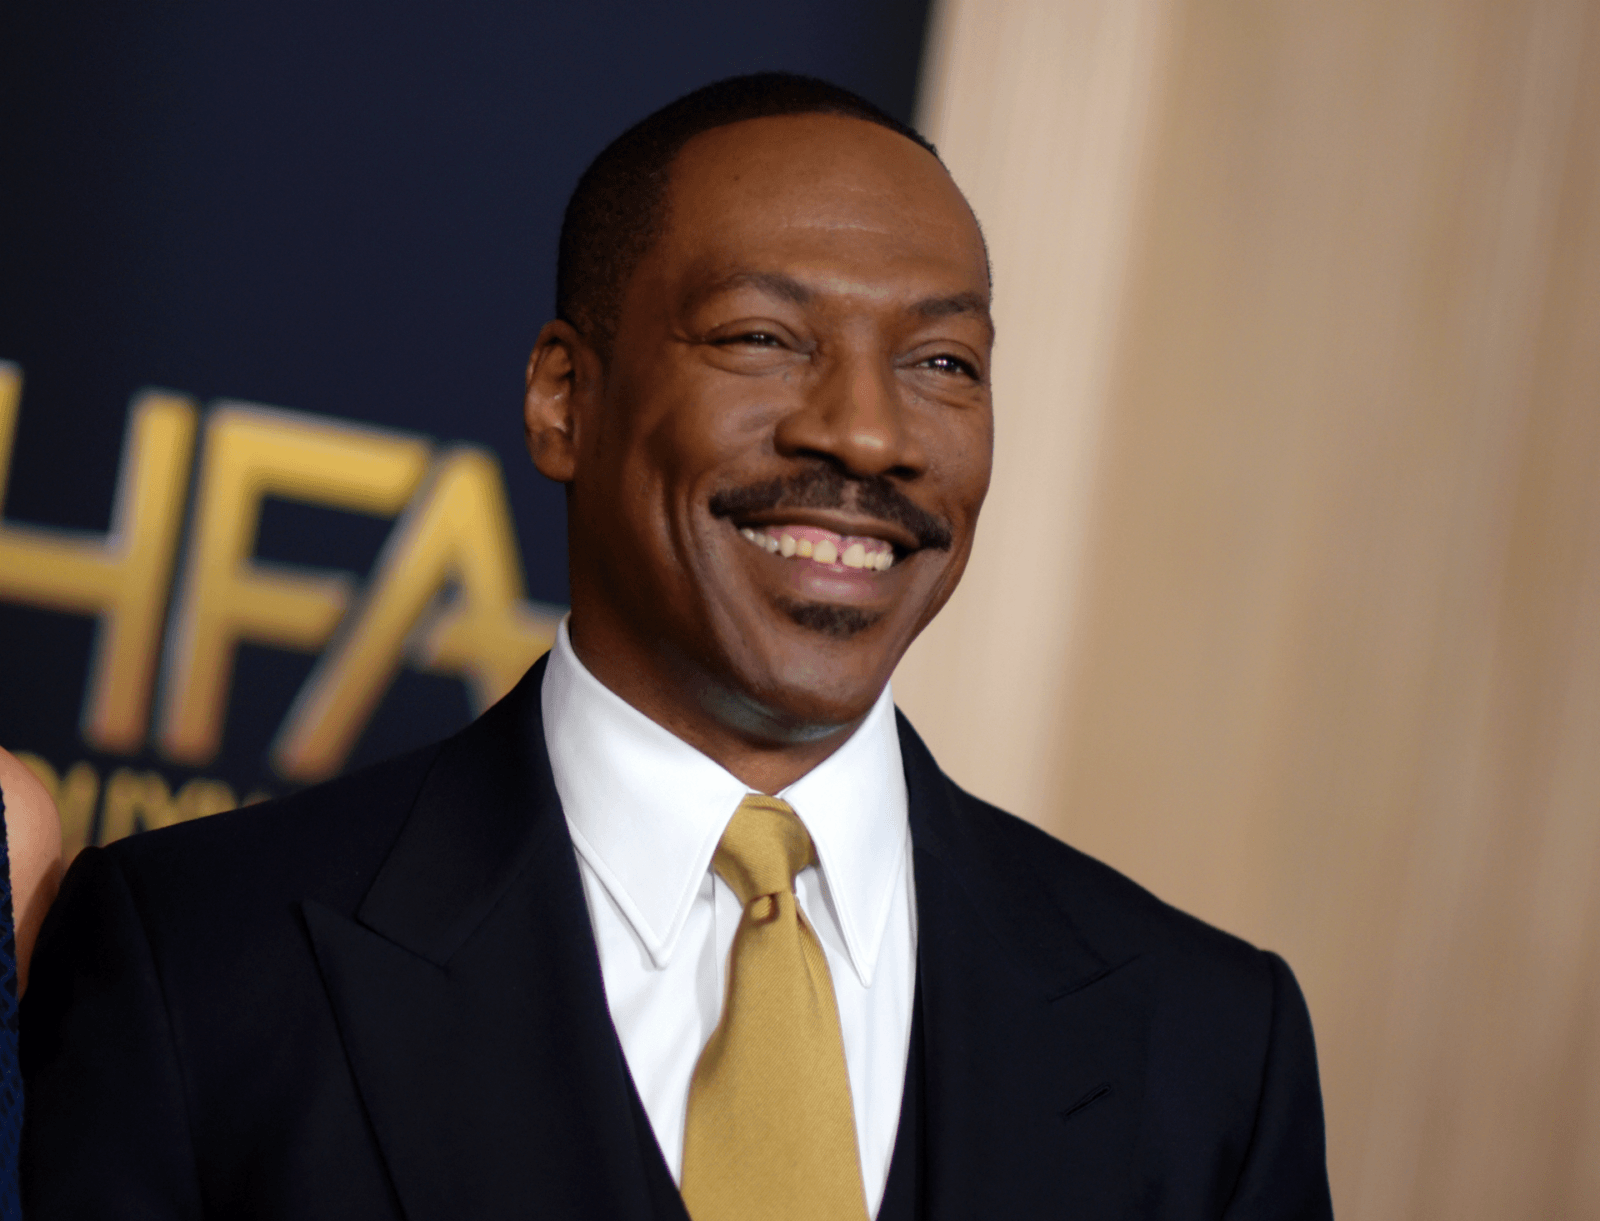 Fox News Today: Eddie Murphy returns to 'SNL' — pokes fun at Bill Cosby, accidentally says 's—'